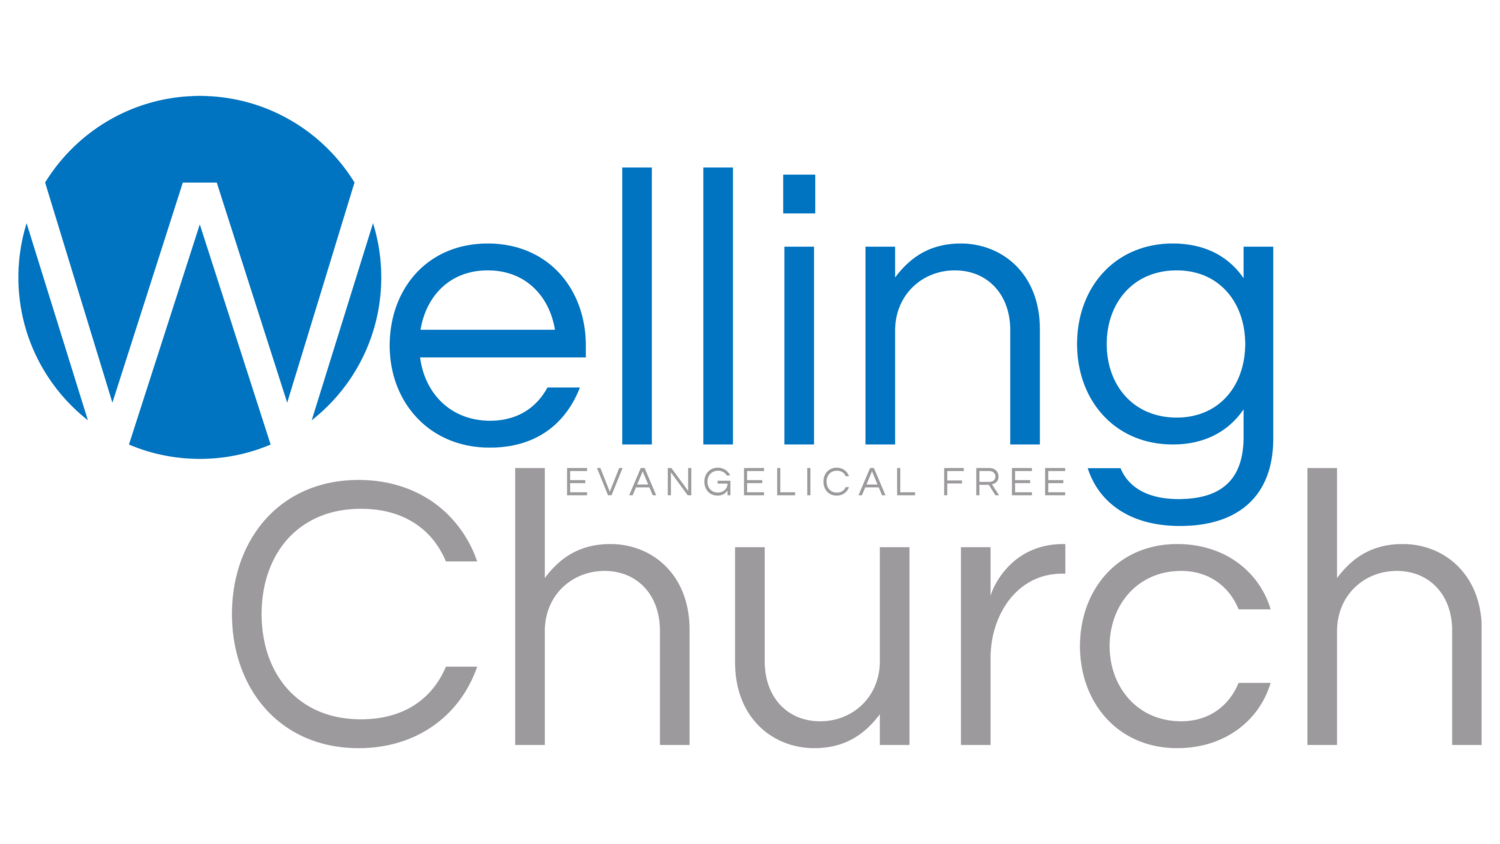 Welling Evangelical Free Church